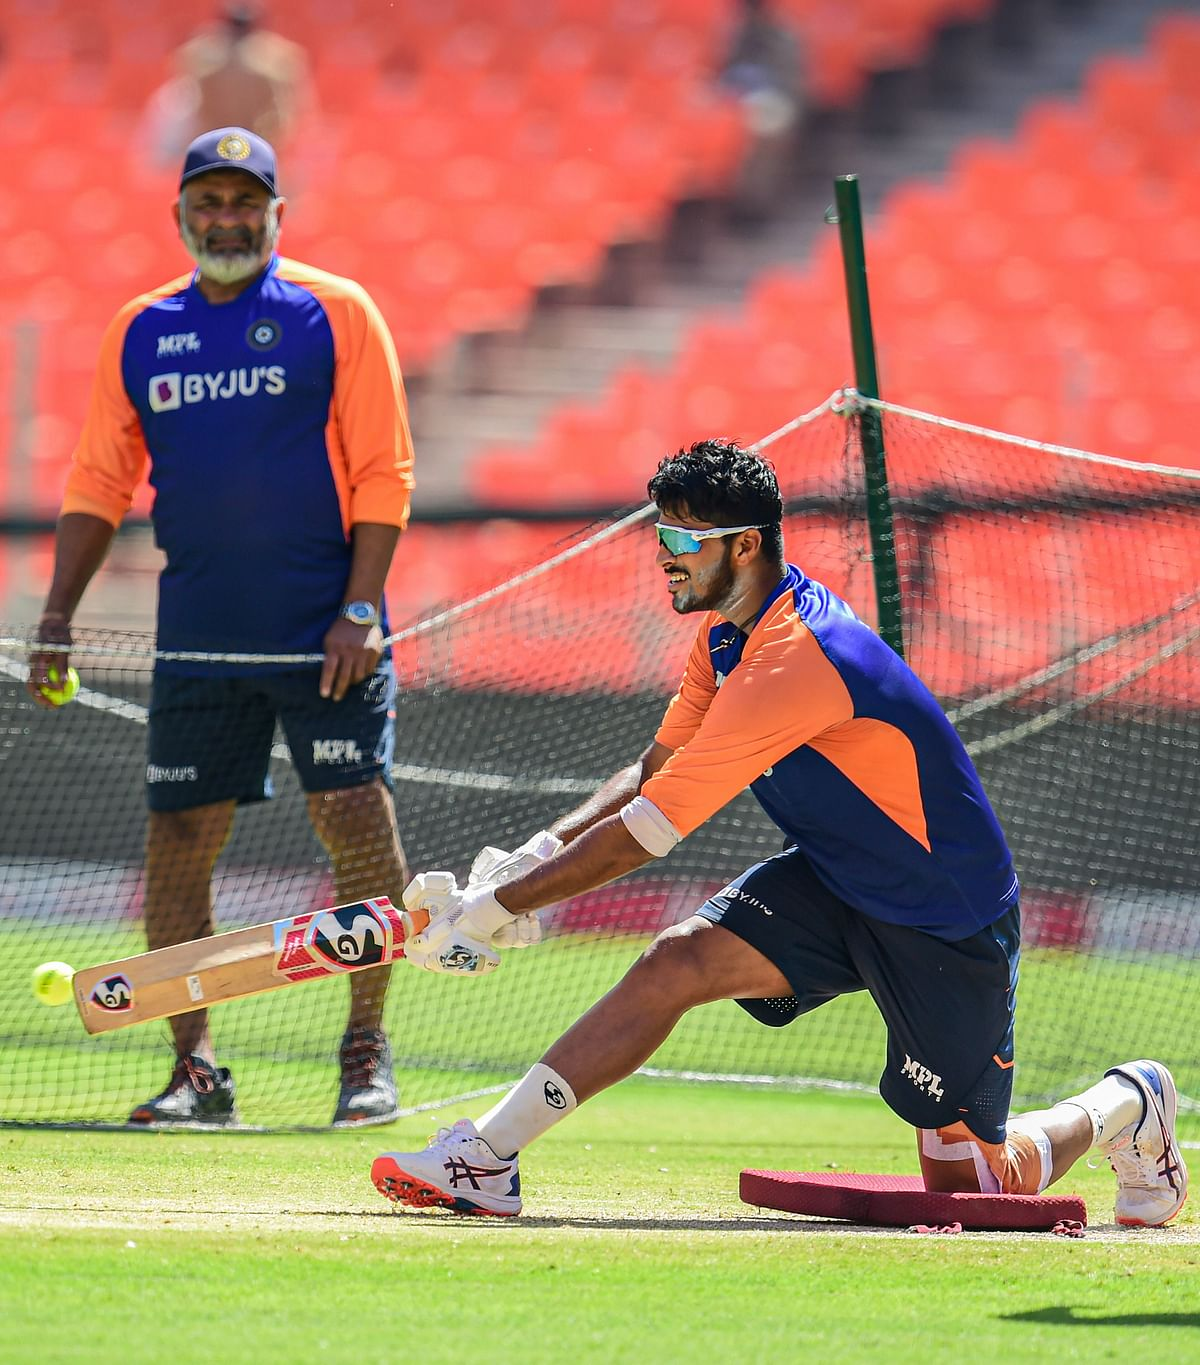 With Lord's insight; Virat Kohli and his boys are ready to cook England's goose, while the visitors look to spoil the party